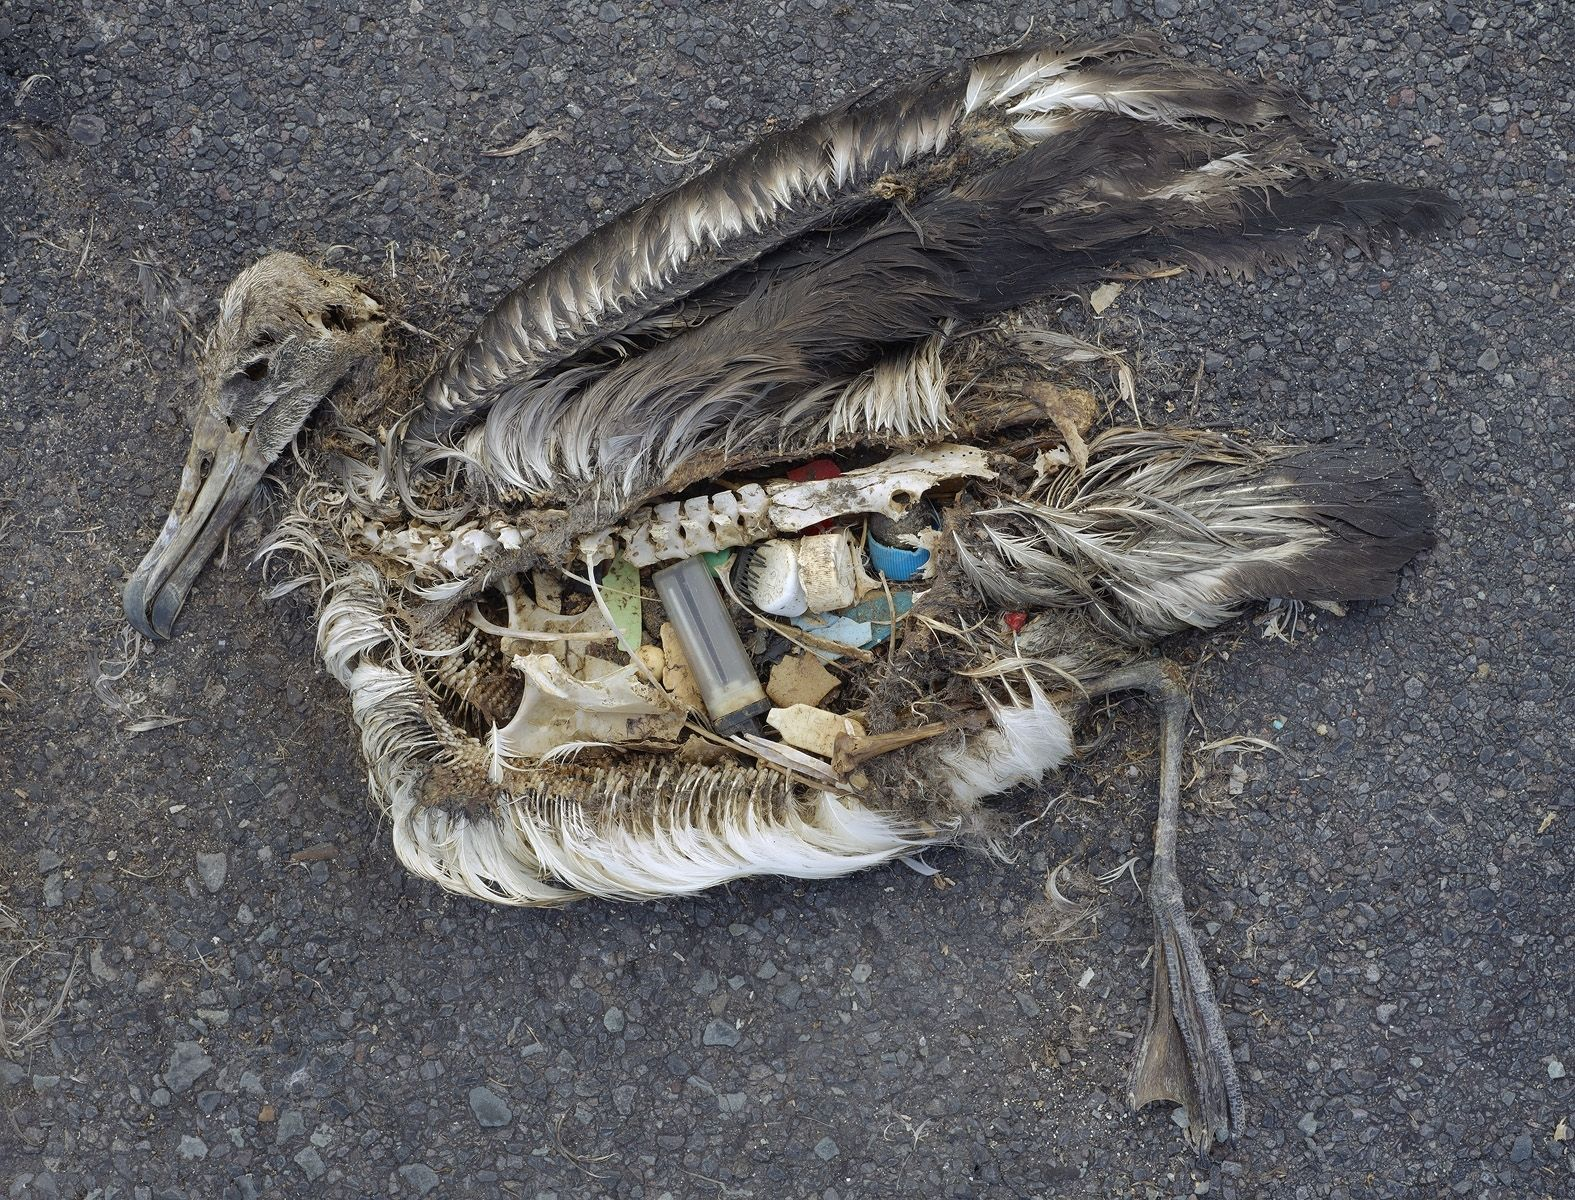 Stomach contents of a dead albatross, courtesy wikimedia via Creative Commons - Chris Jordan